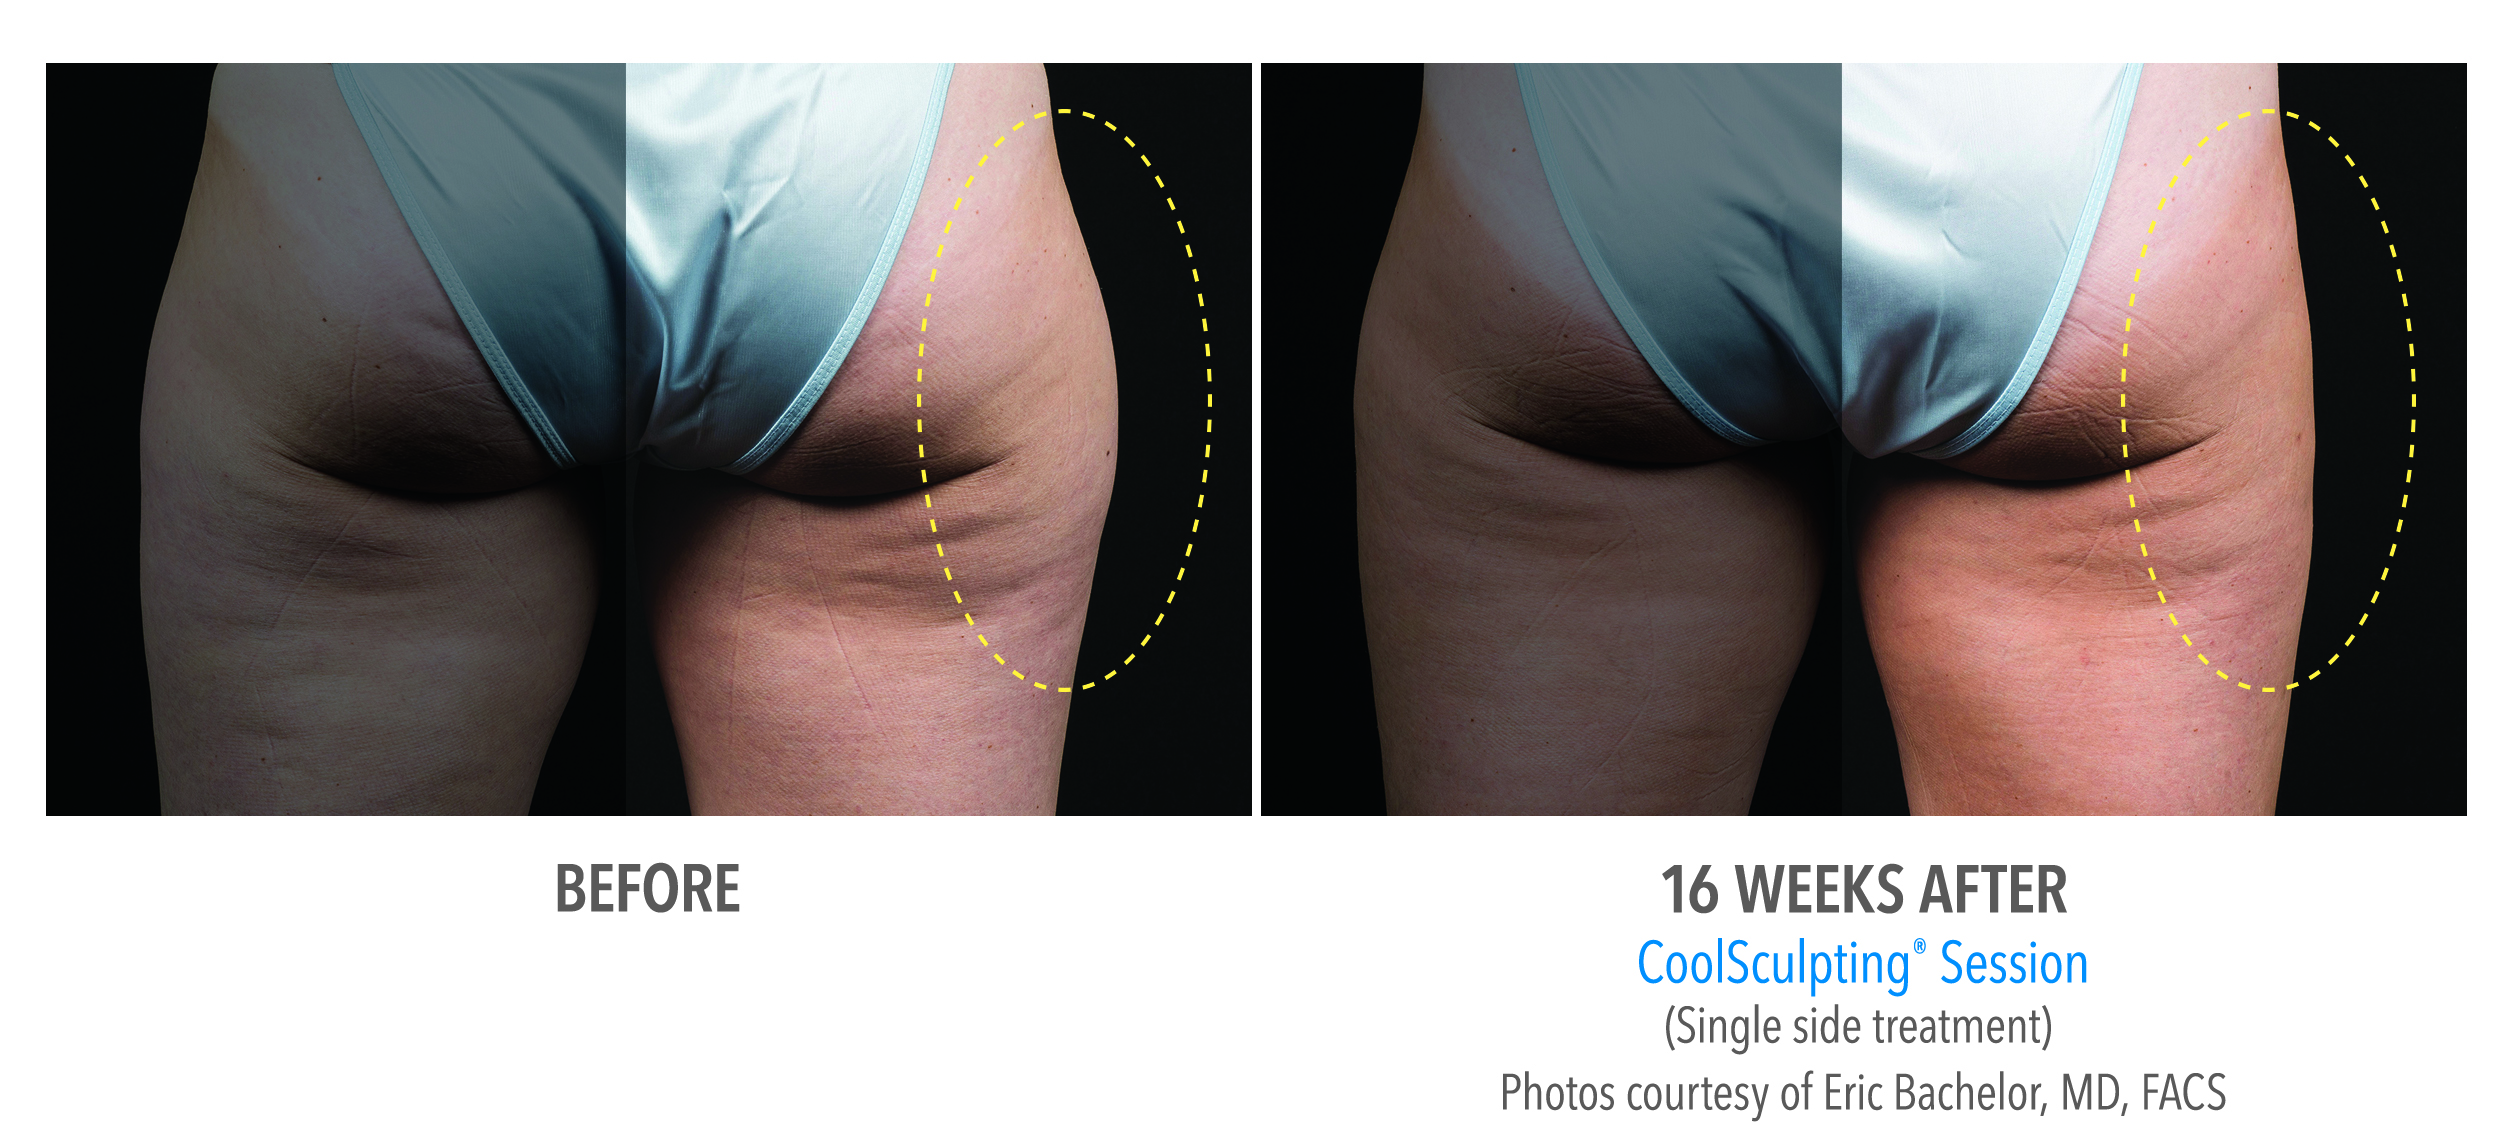 whittier-coolsculpting-thighs-outer-thigh-1